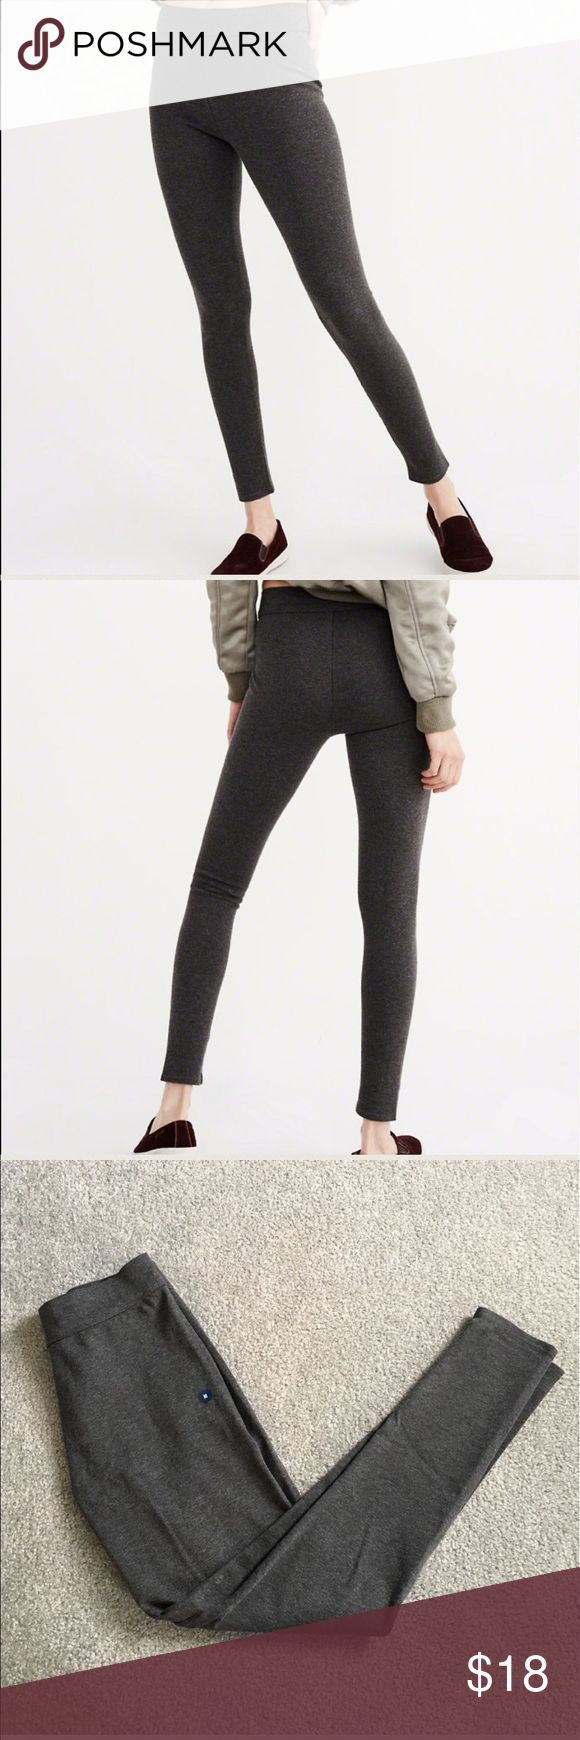 """Abercrombie and Fitch Leggings Brand new without tags, but still has """"M"""" sticker on it.  Pointe Knit. Abercrombie & Fitch Pants Leggings"""